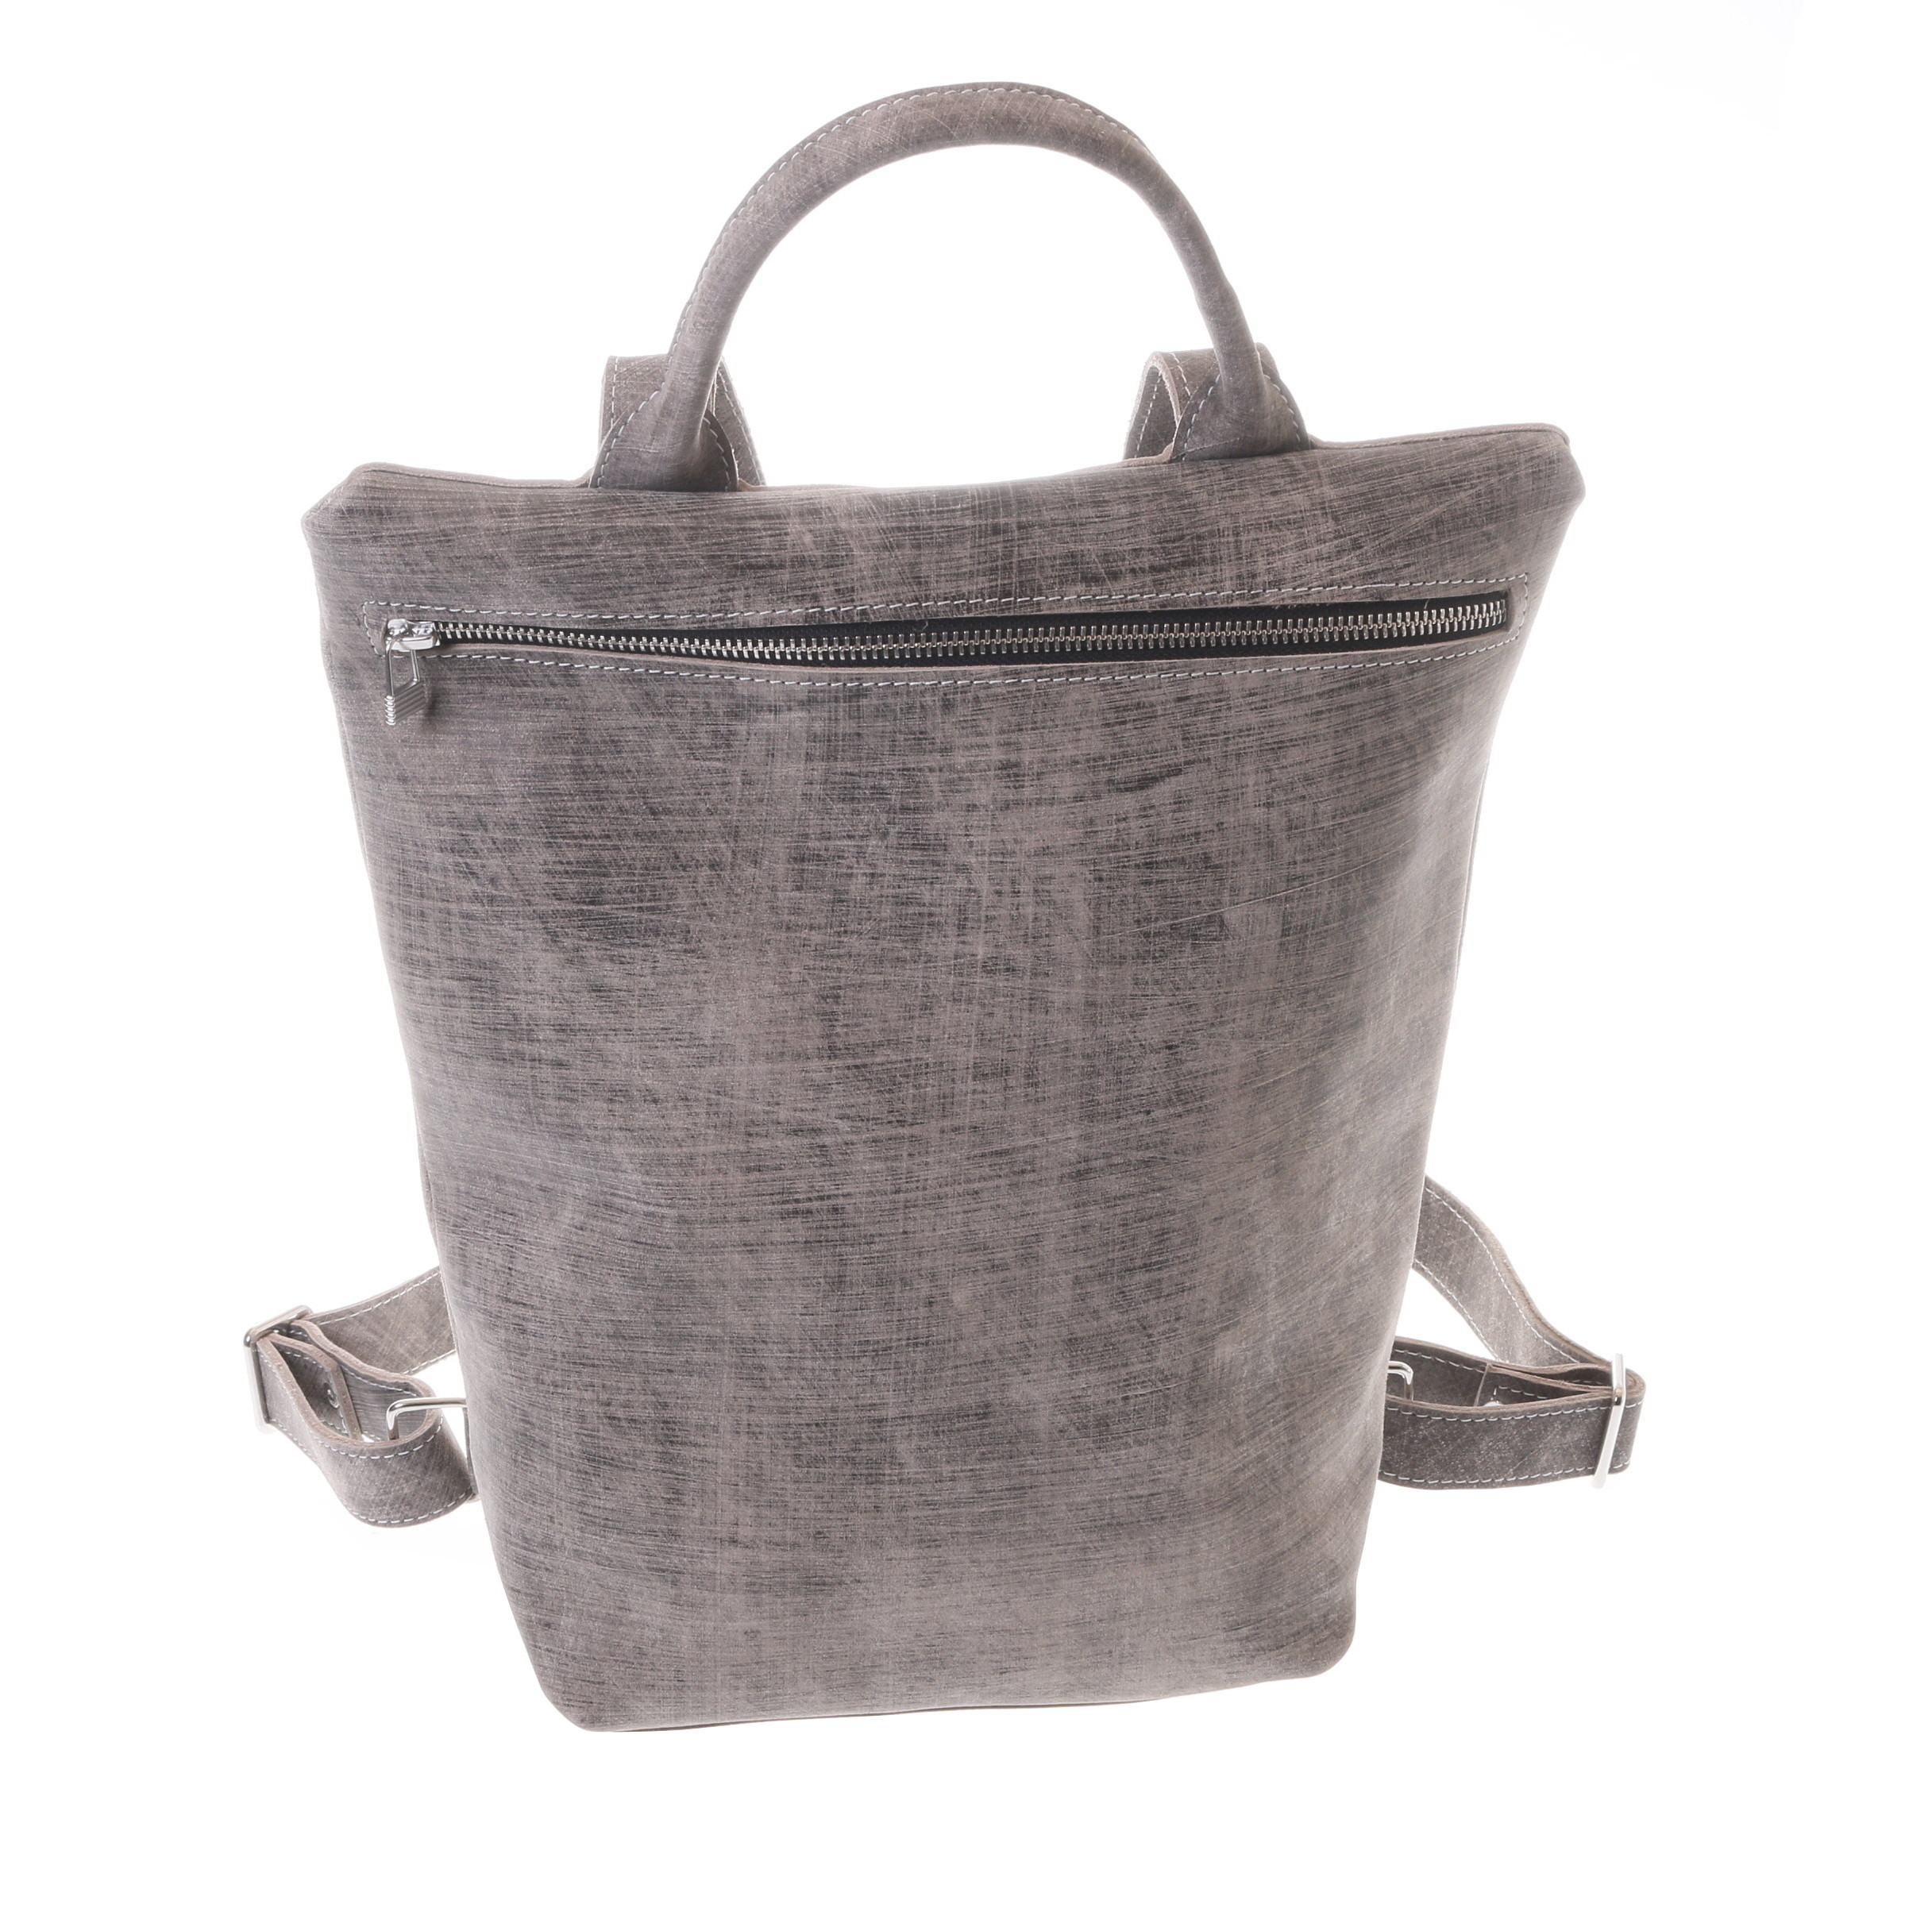 Gundara - grey-scratch leather backpack - handmade in Ethiopia - a fair musthave